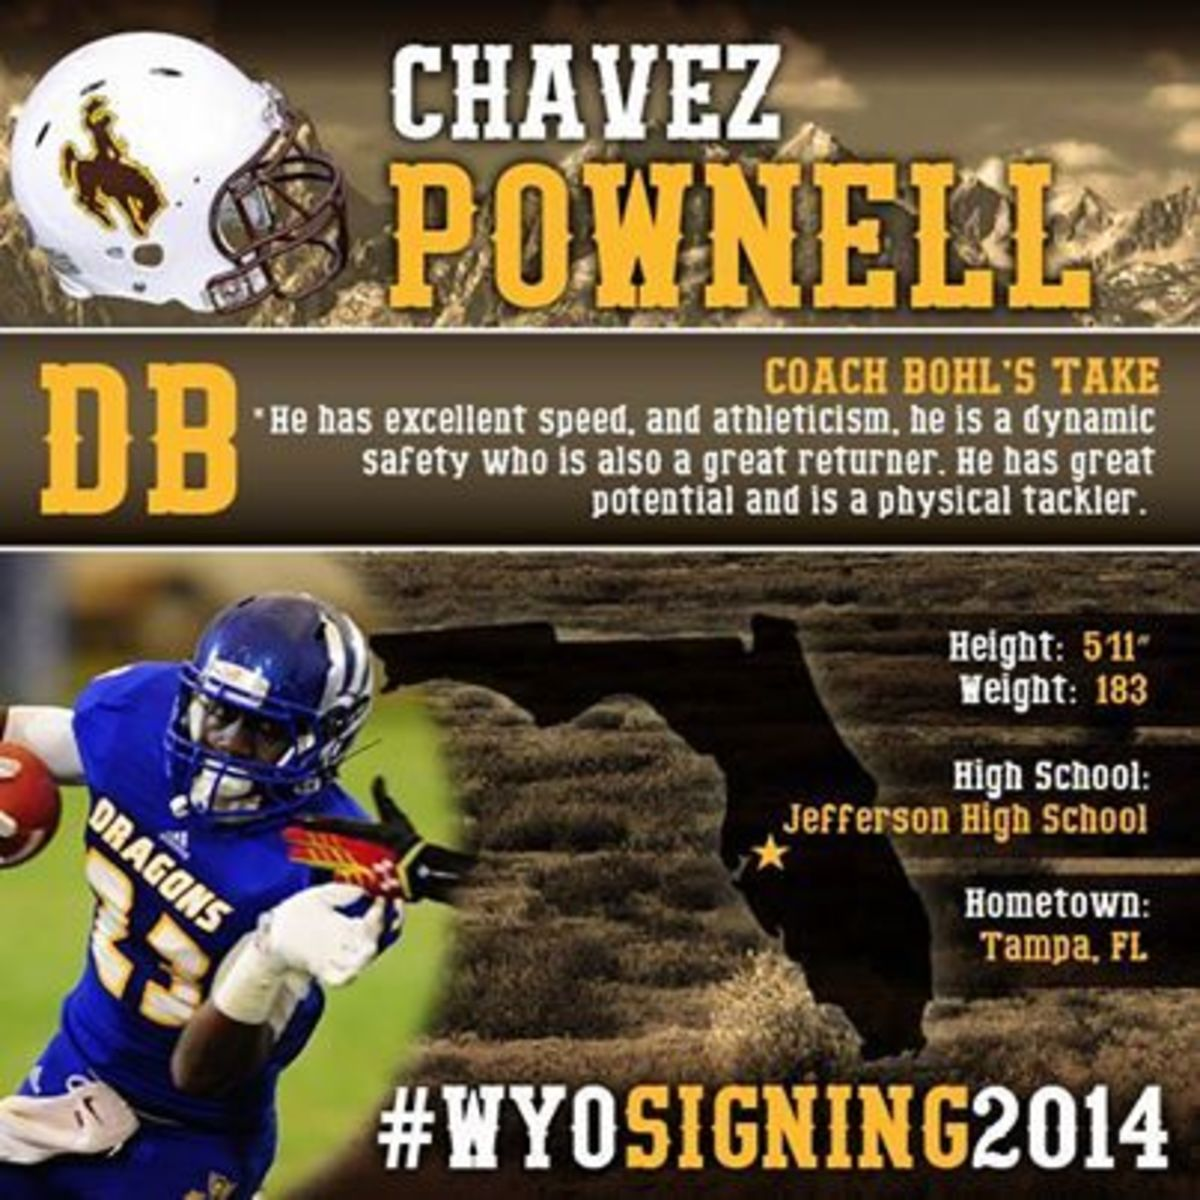 Wyoming Football - 2014 Signing Day Player Card